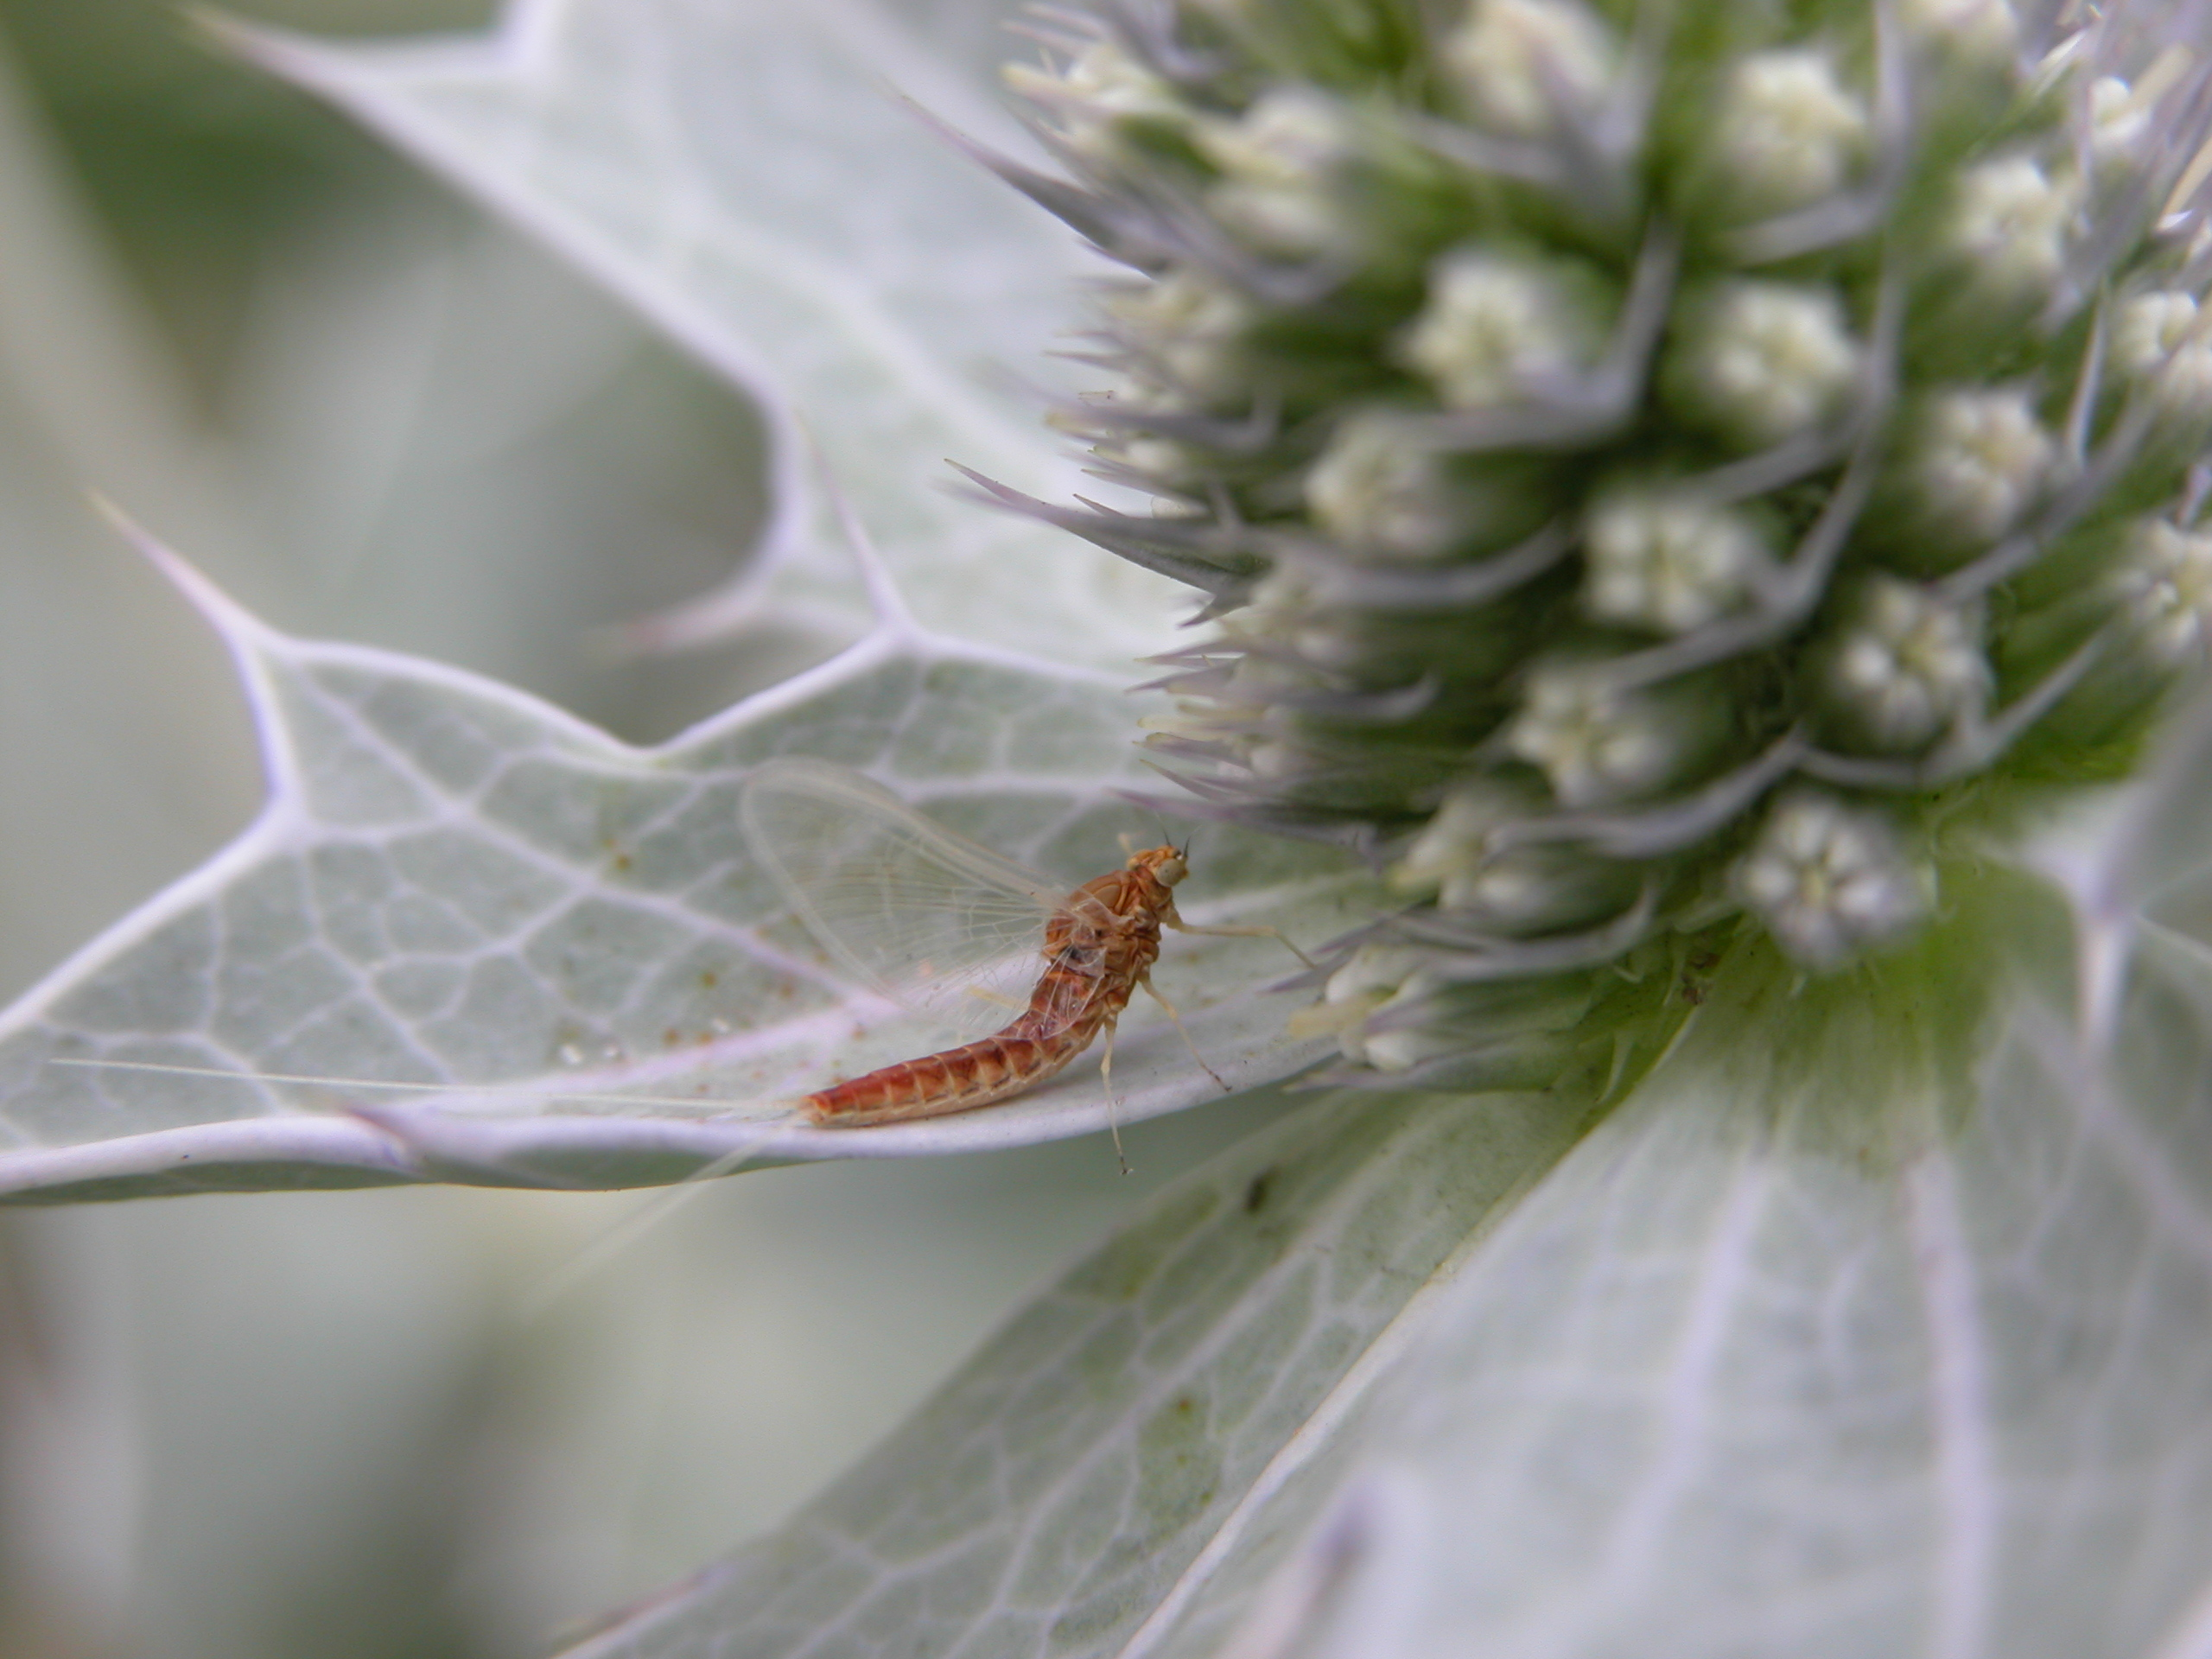 flying insect on a plant resting